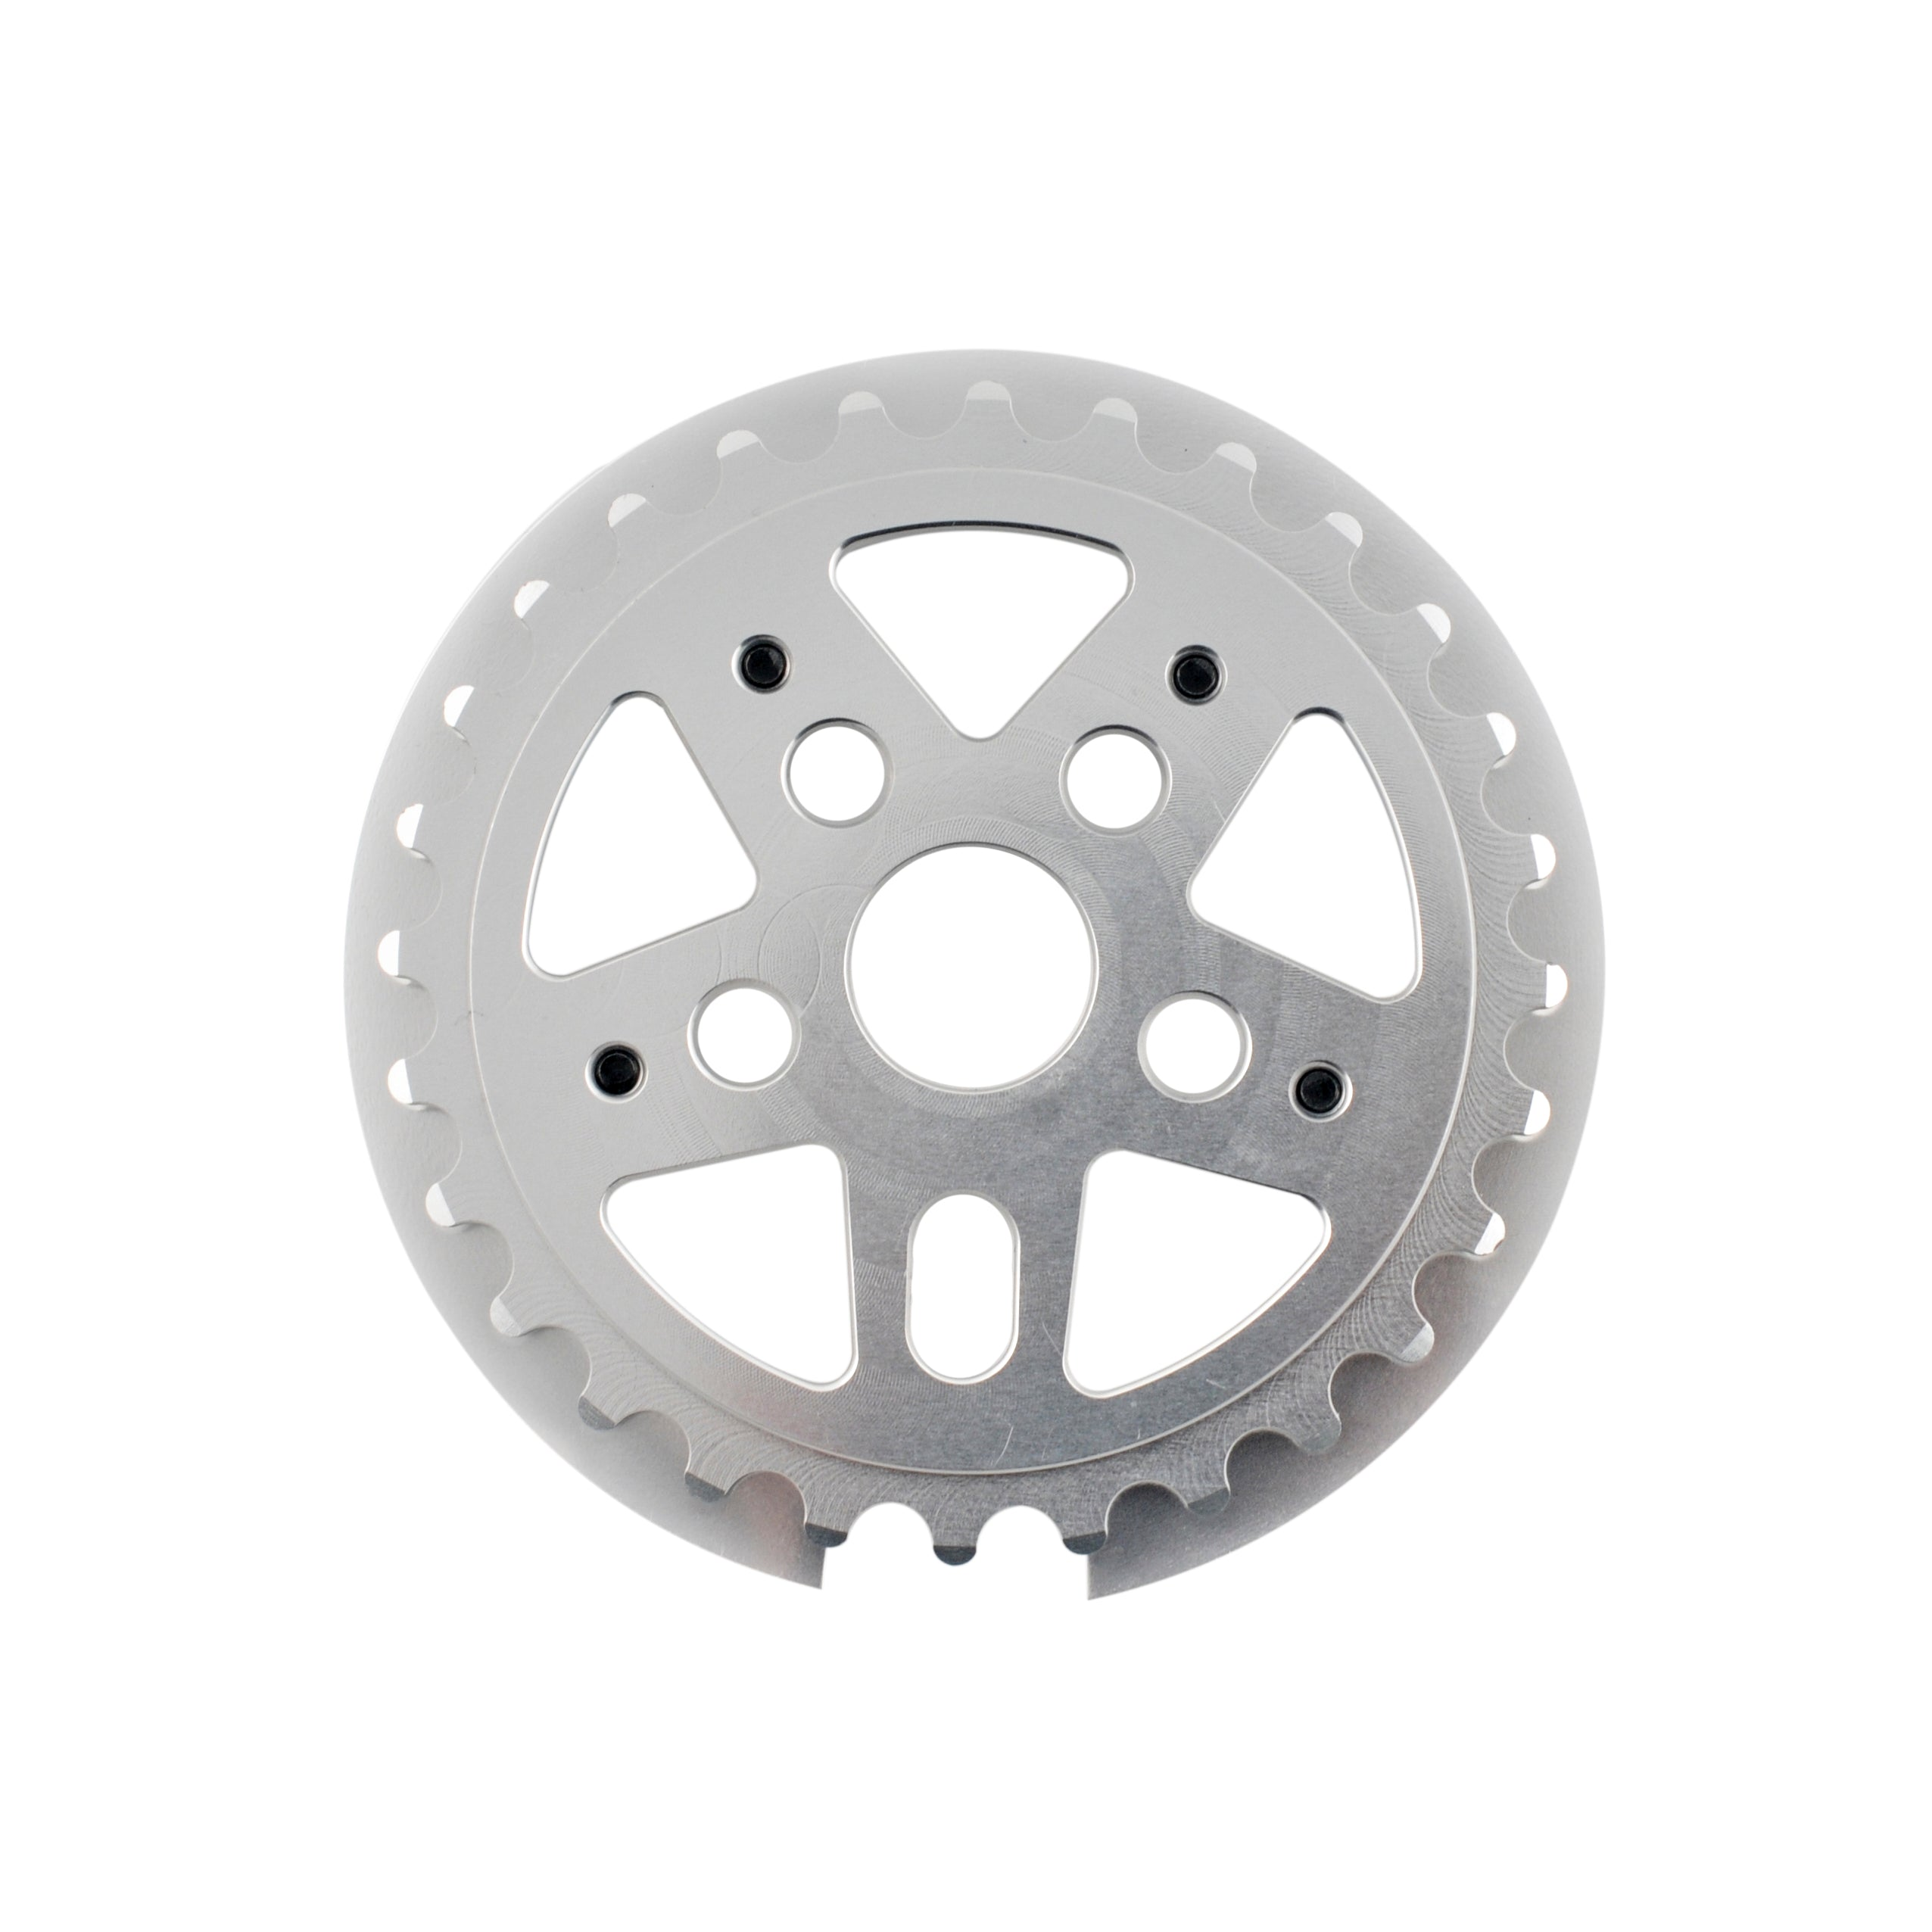 MDLCLS Sprocket With Guard - Polished